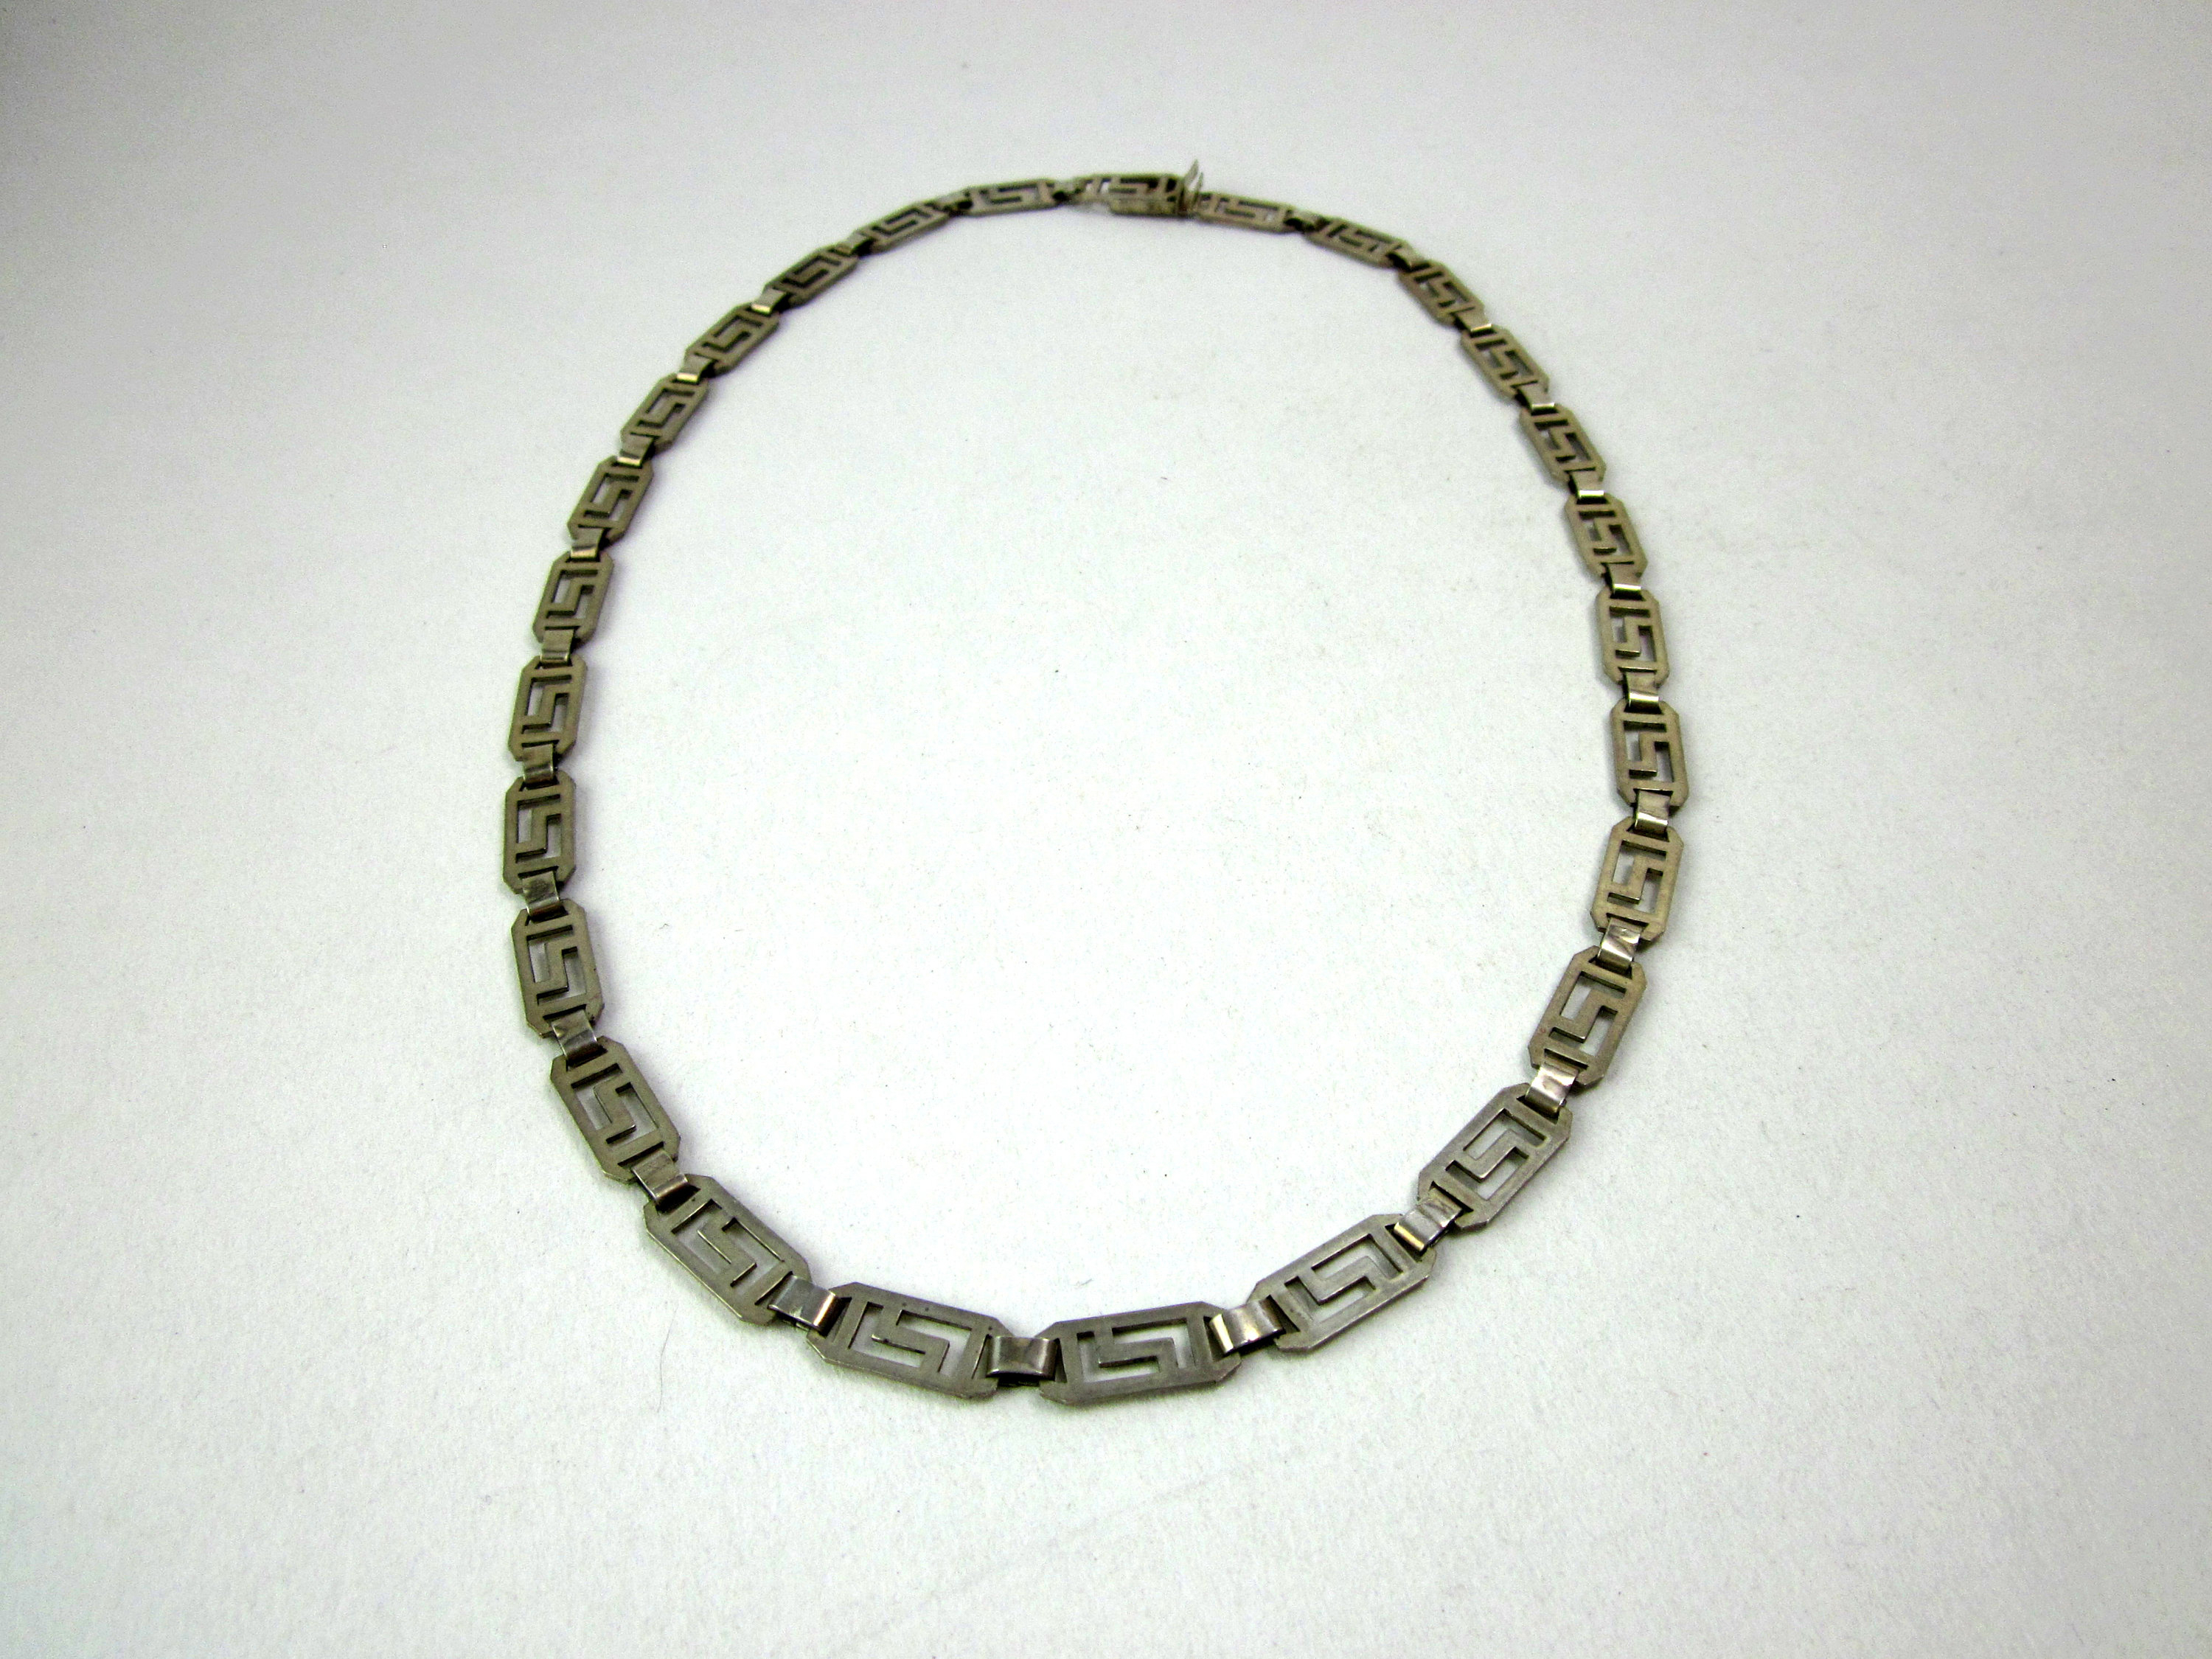 925 Silver Cline Chain, Collier, Necklace, Vintage Jewelry Necklace, Gift In Most Current Vintage Circle Collier Necklaces (View 8 of 25)